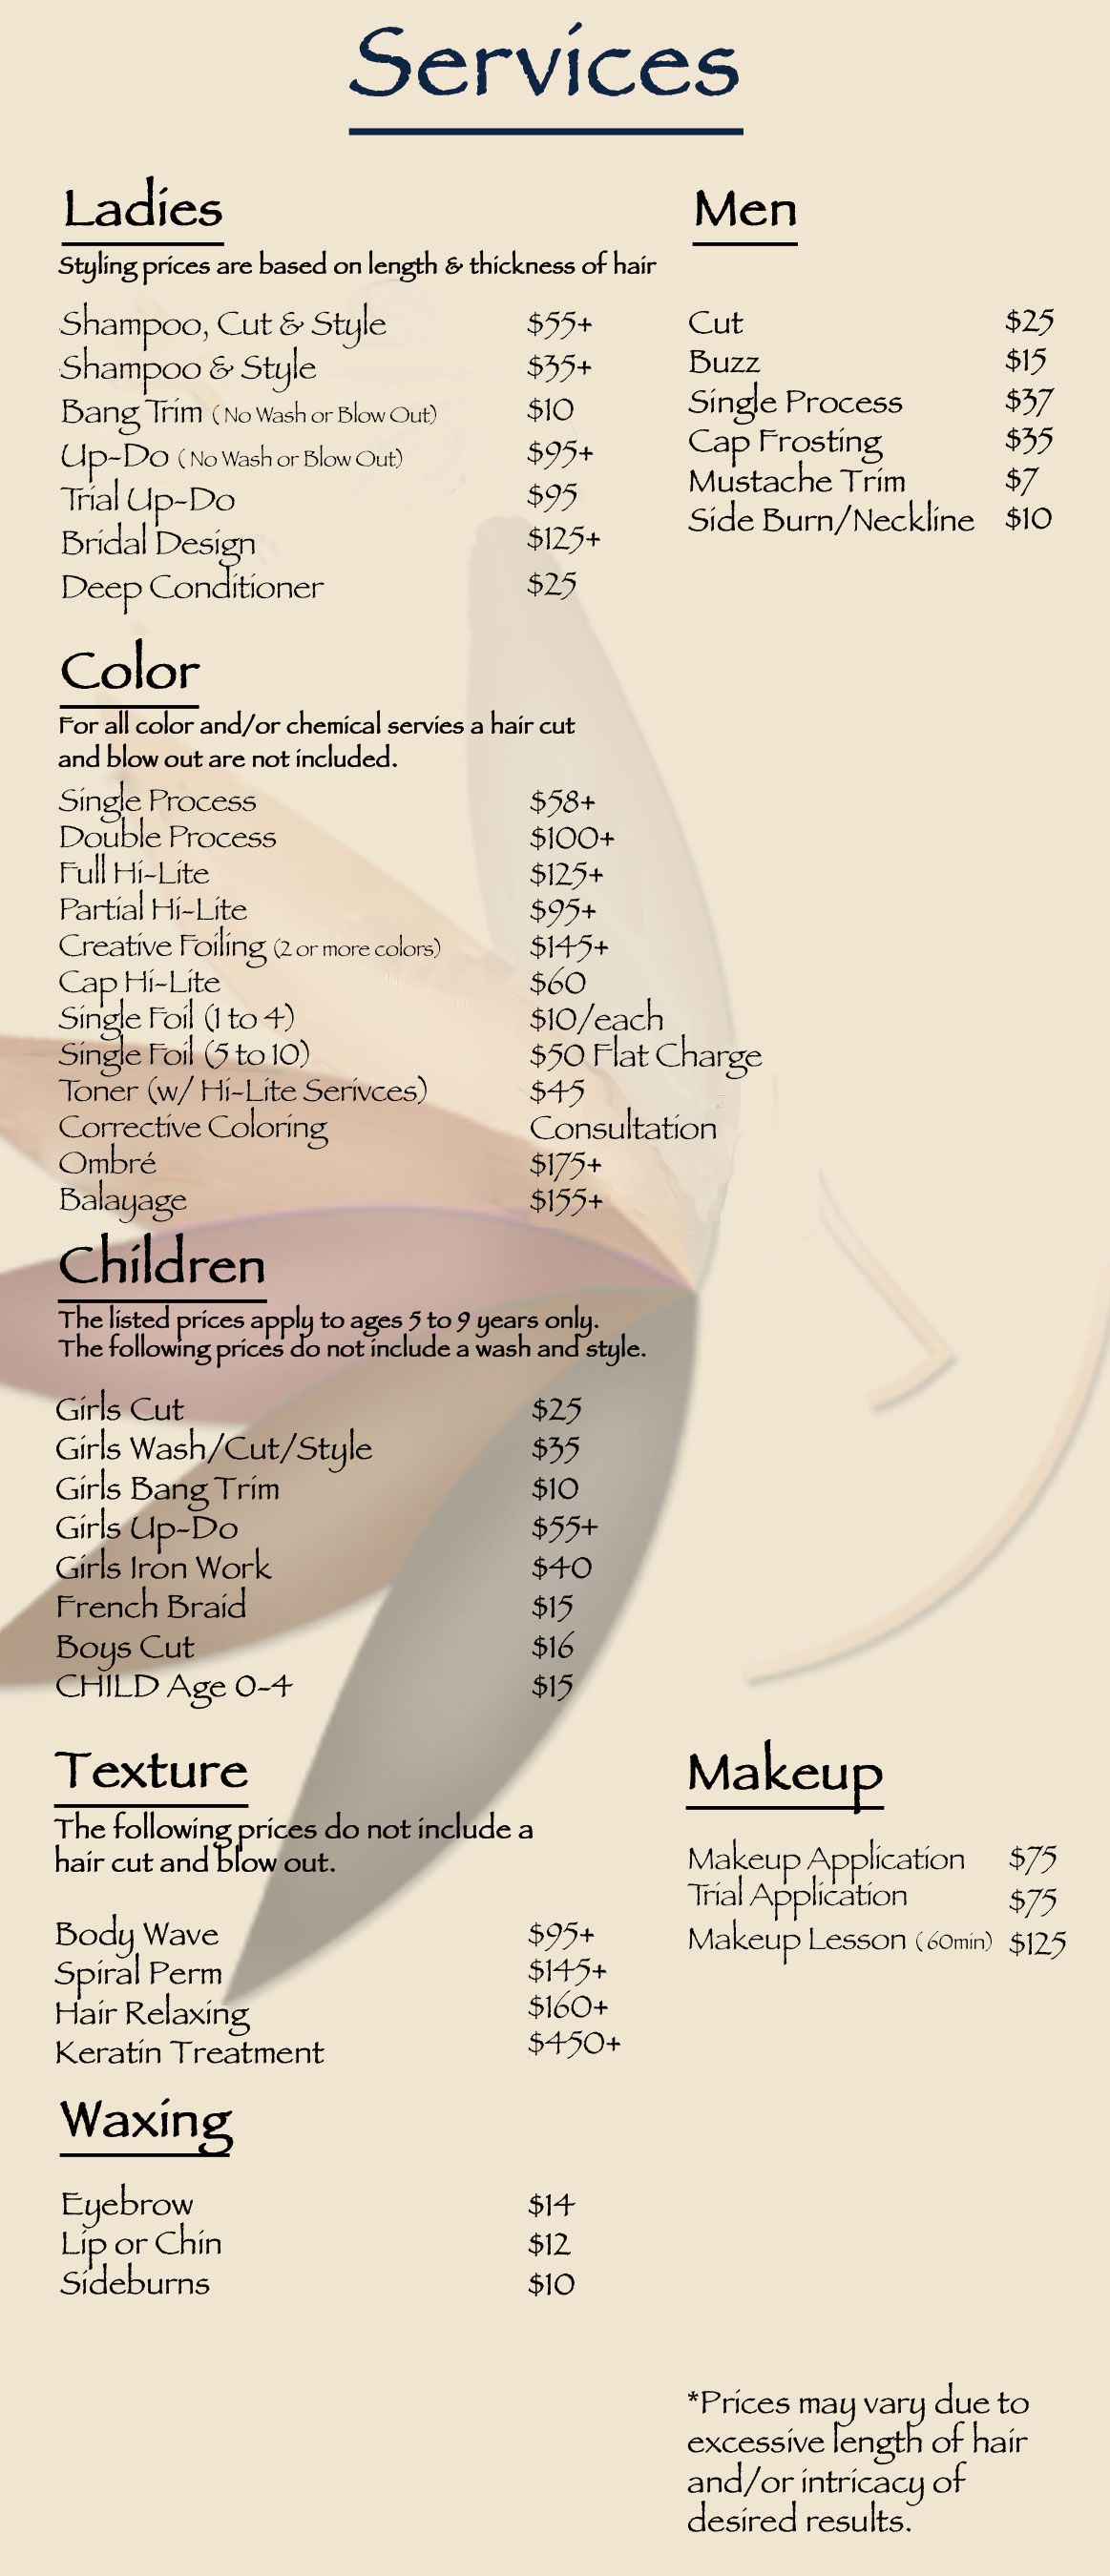 Beauty Salon Prices Image Result For Hair Salon Services And Price List Hair